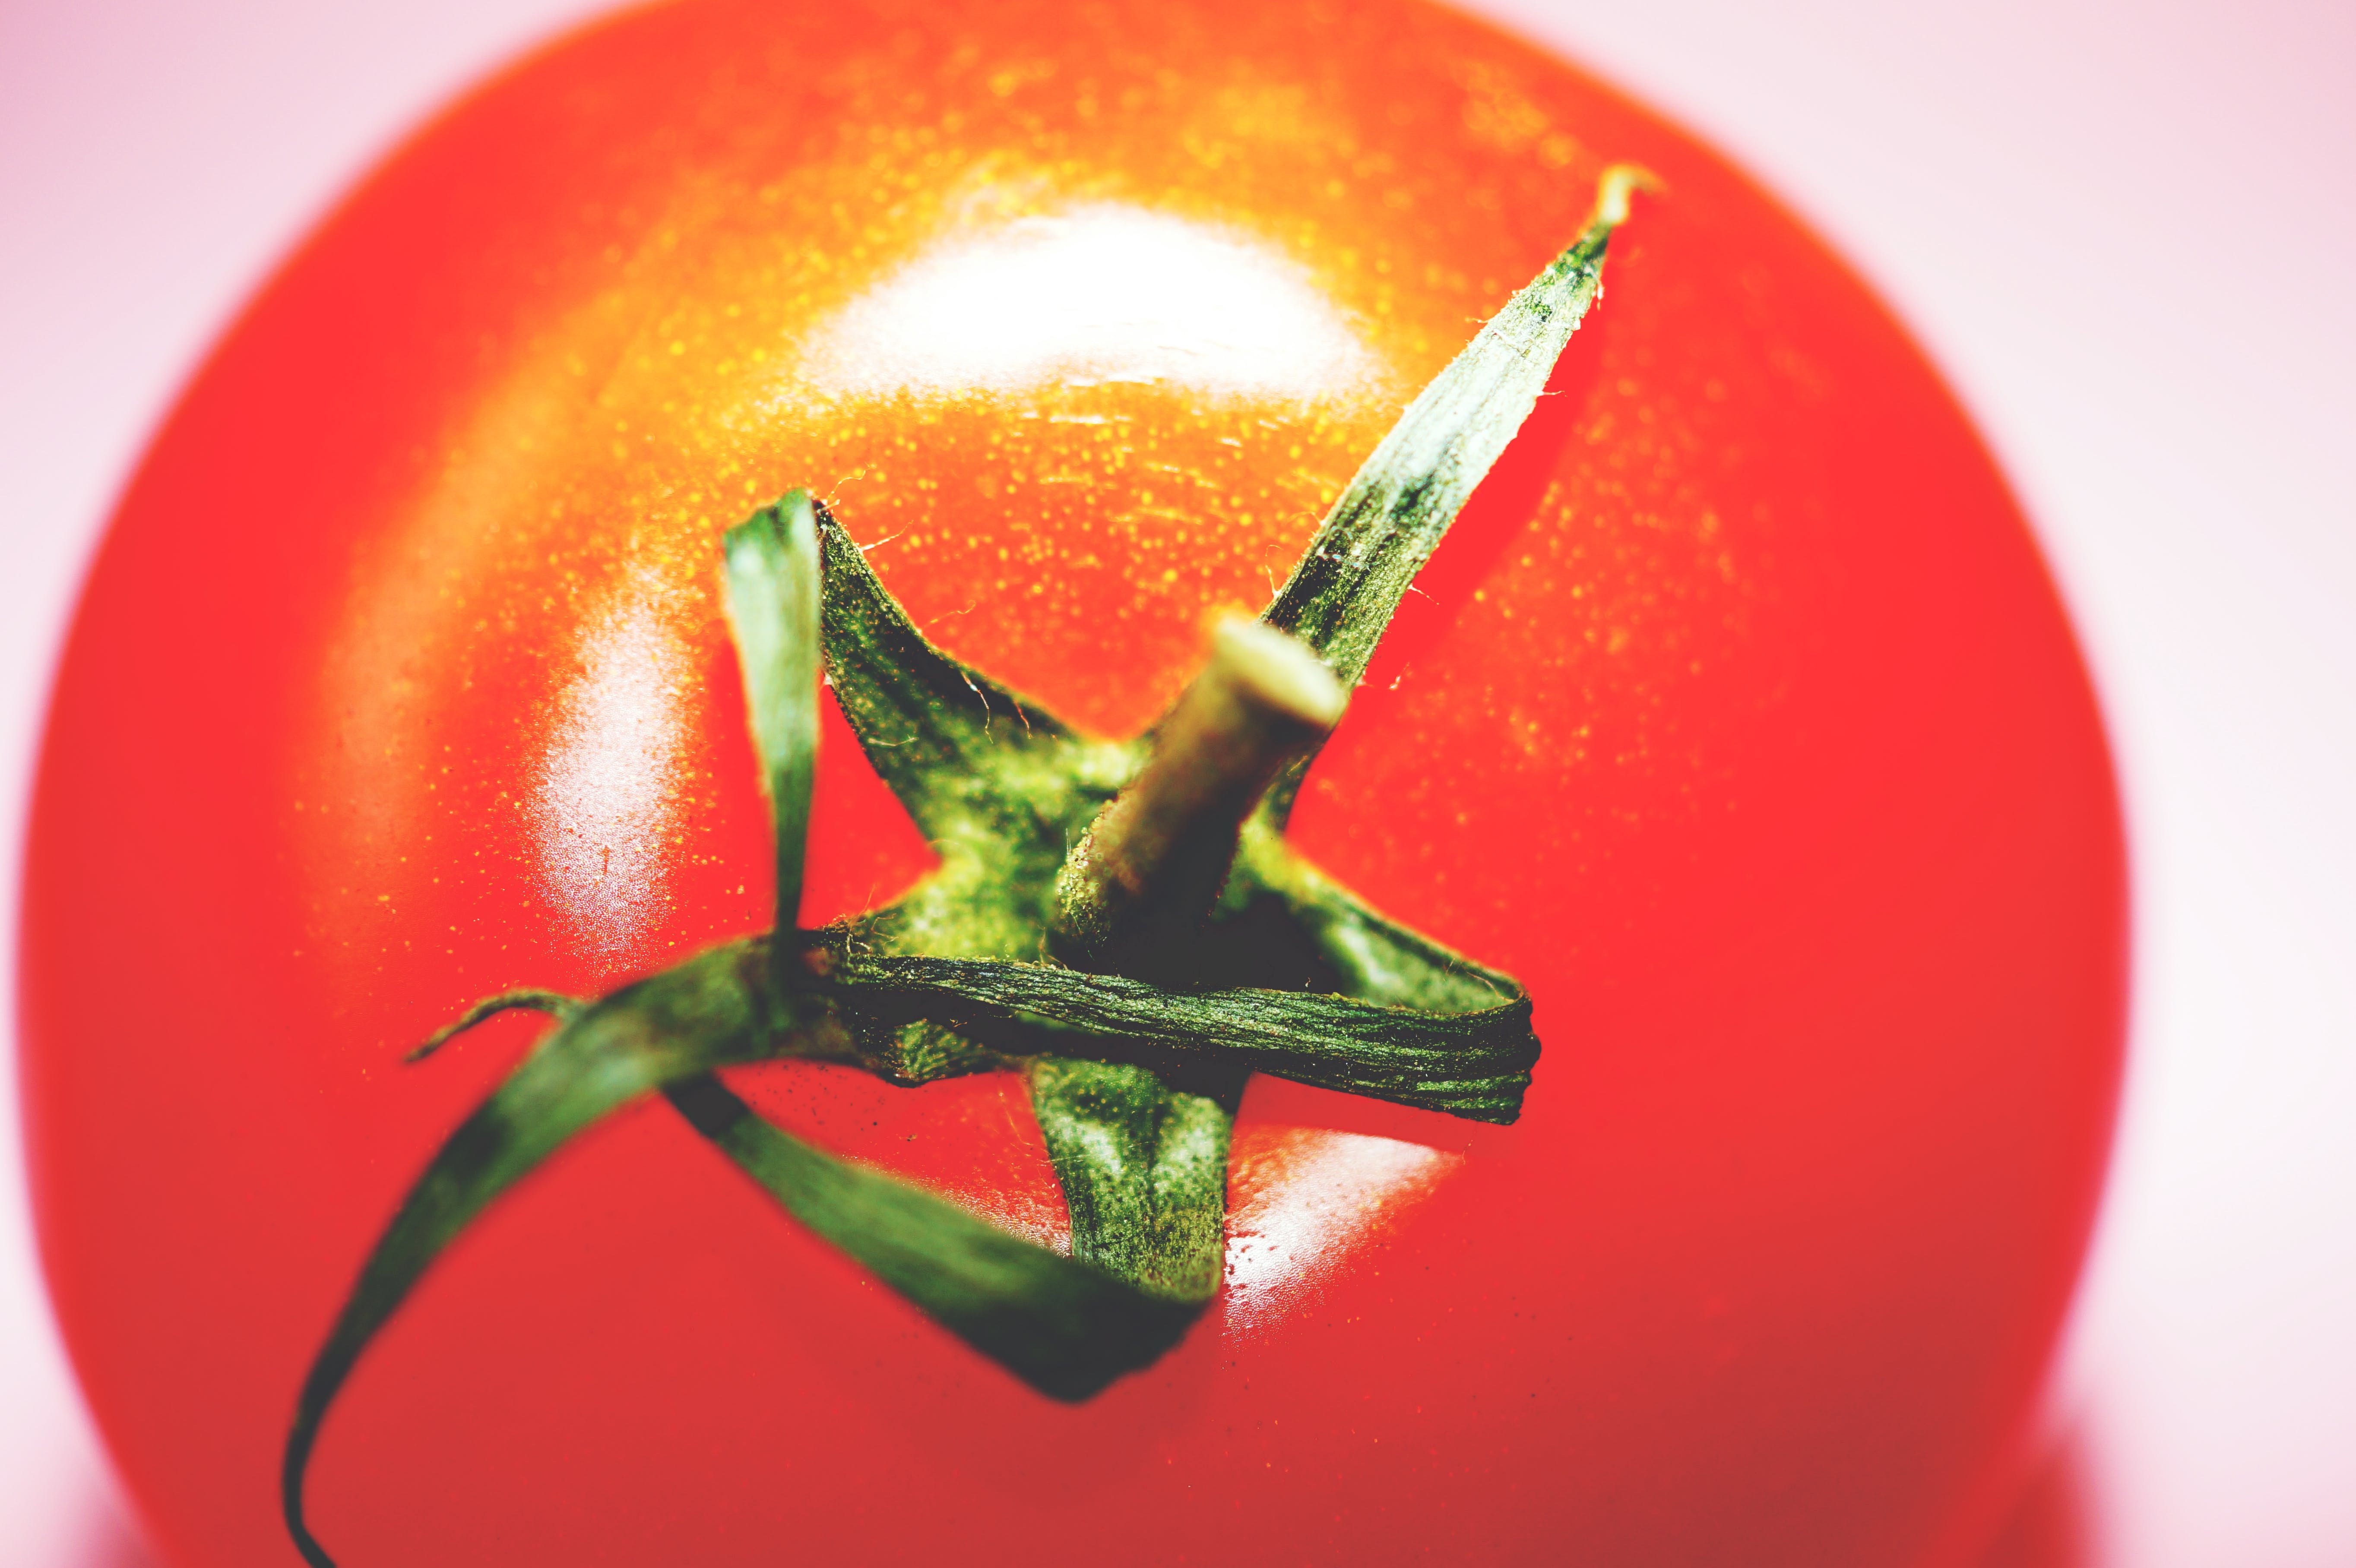 Closeup Photography of Red Tomato